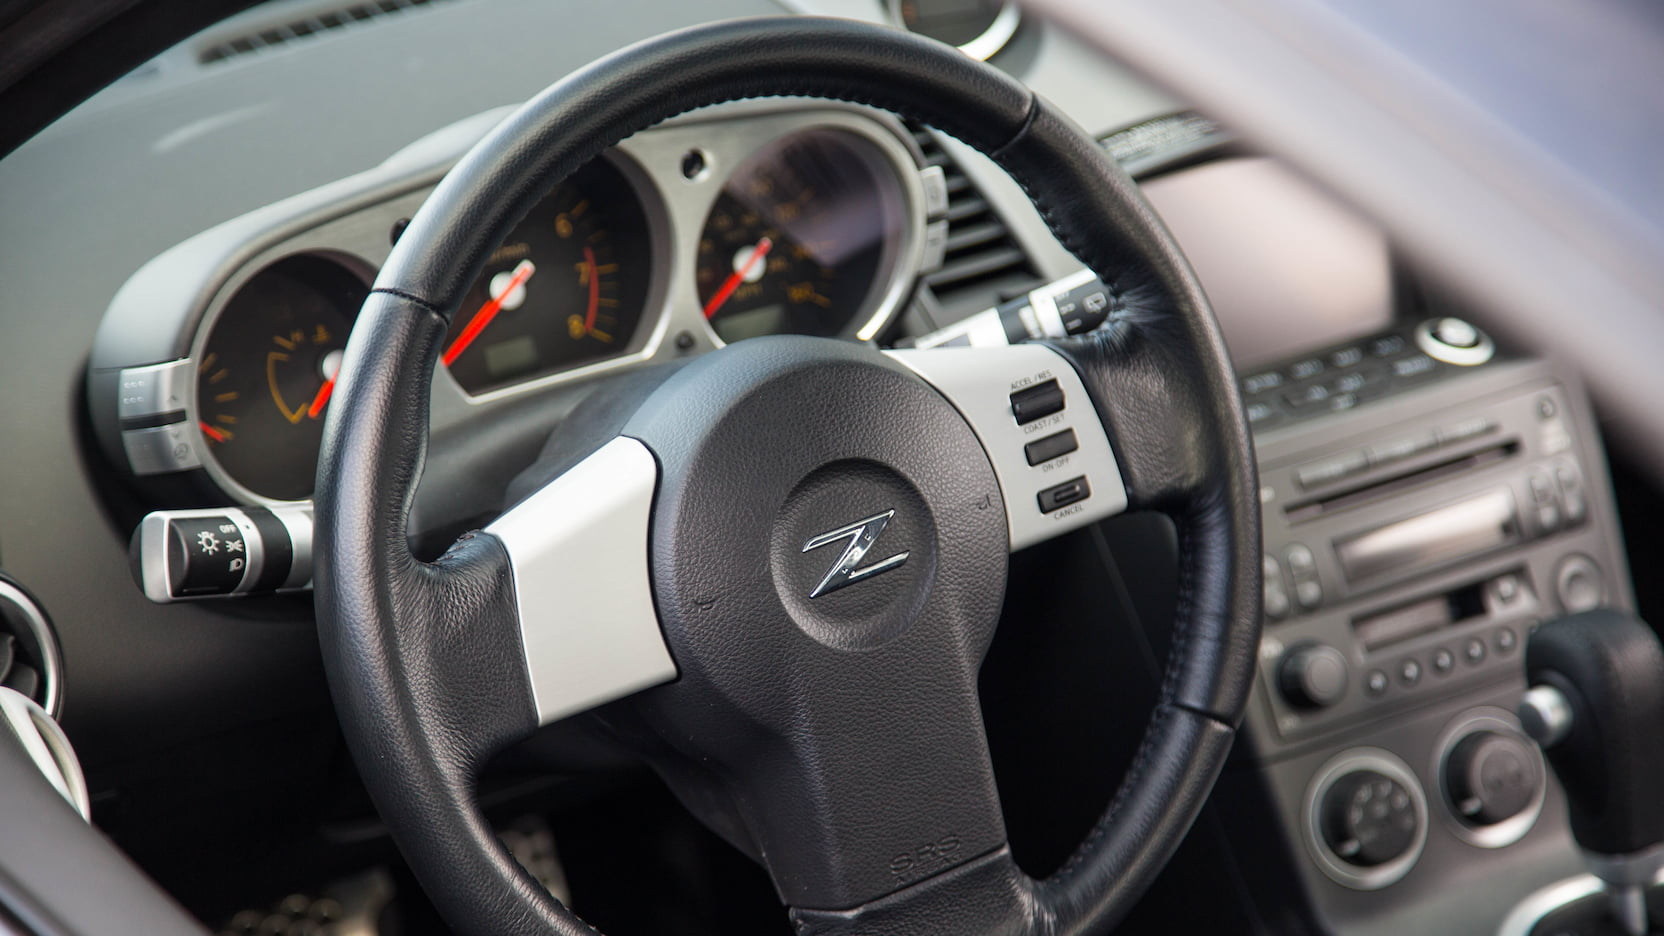 2003 Nissan 350Z steering wheel